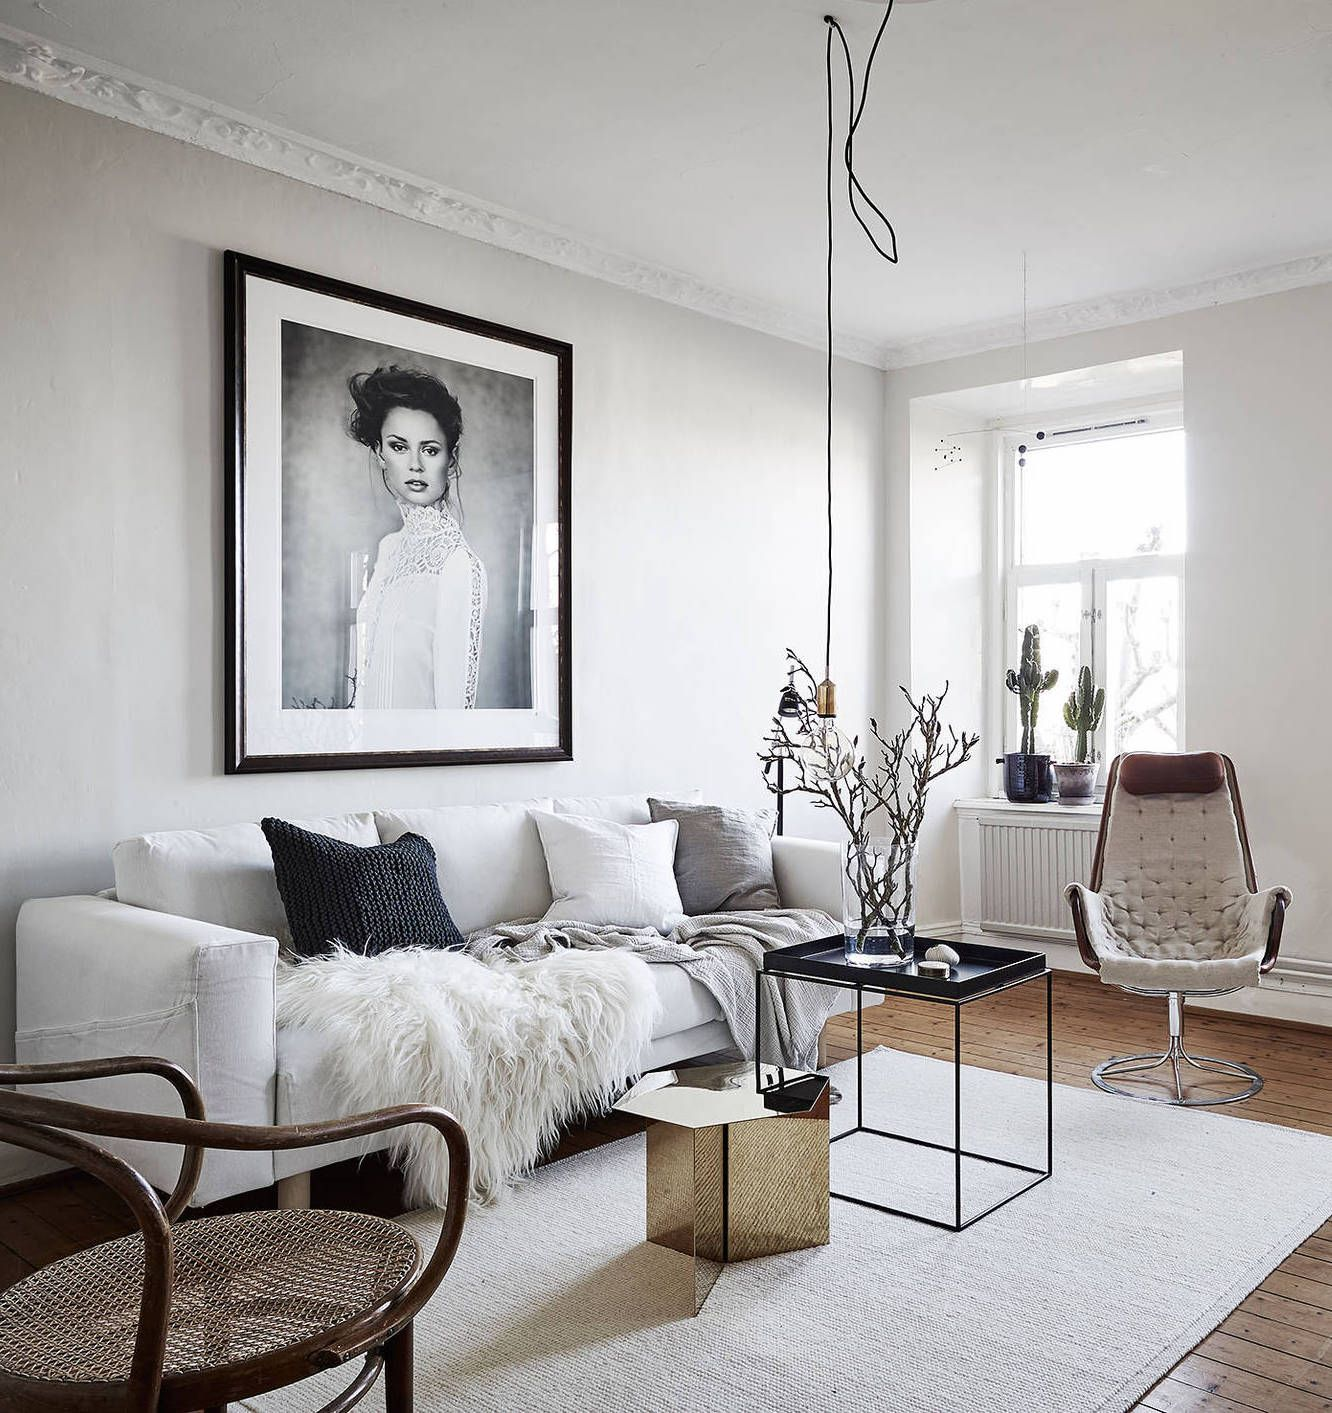 Turn Of The Century Home With Modern Details Modern Detail And